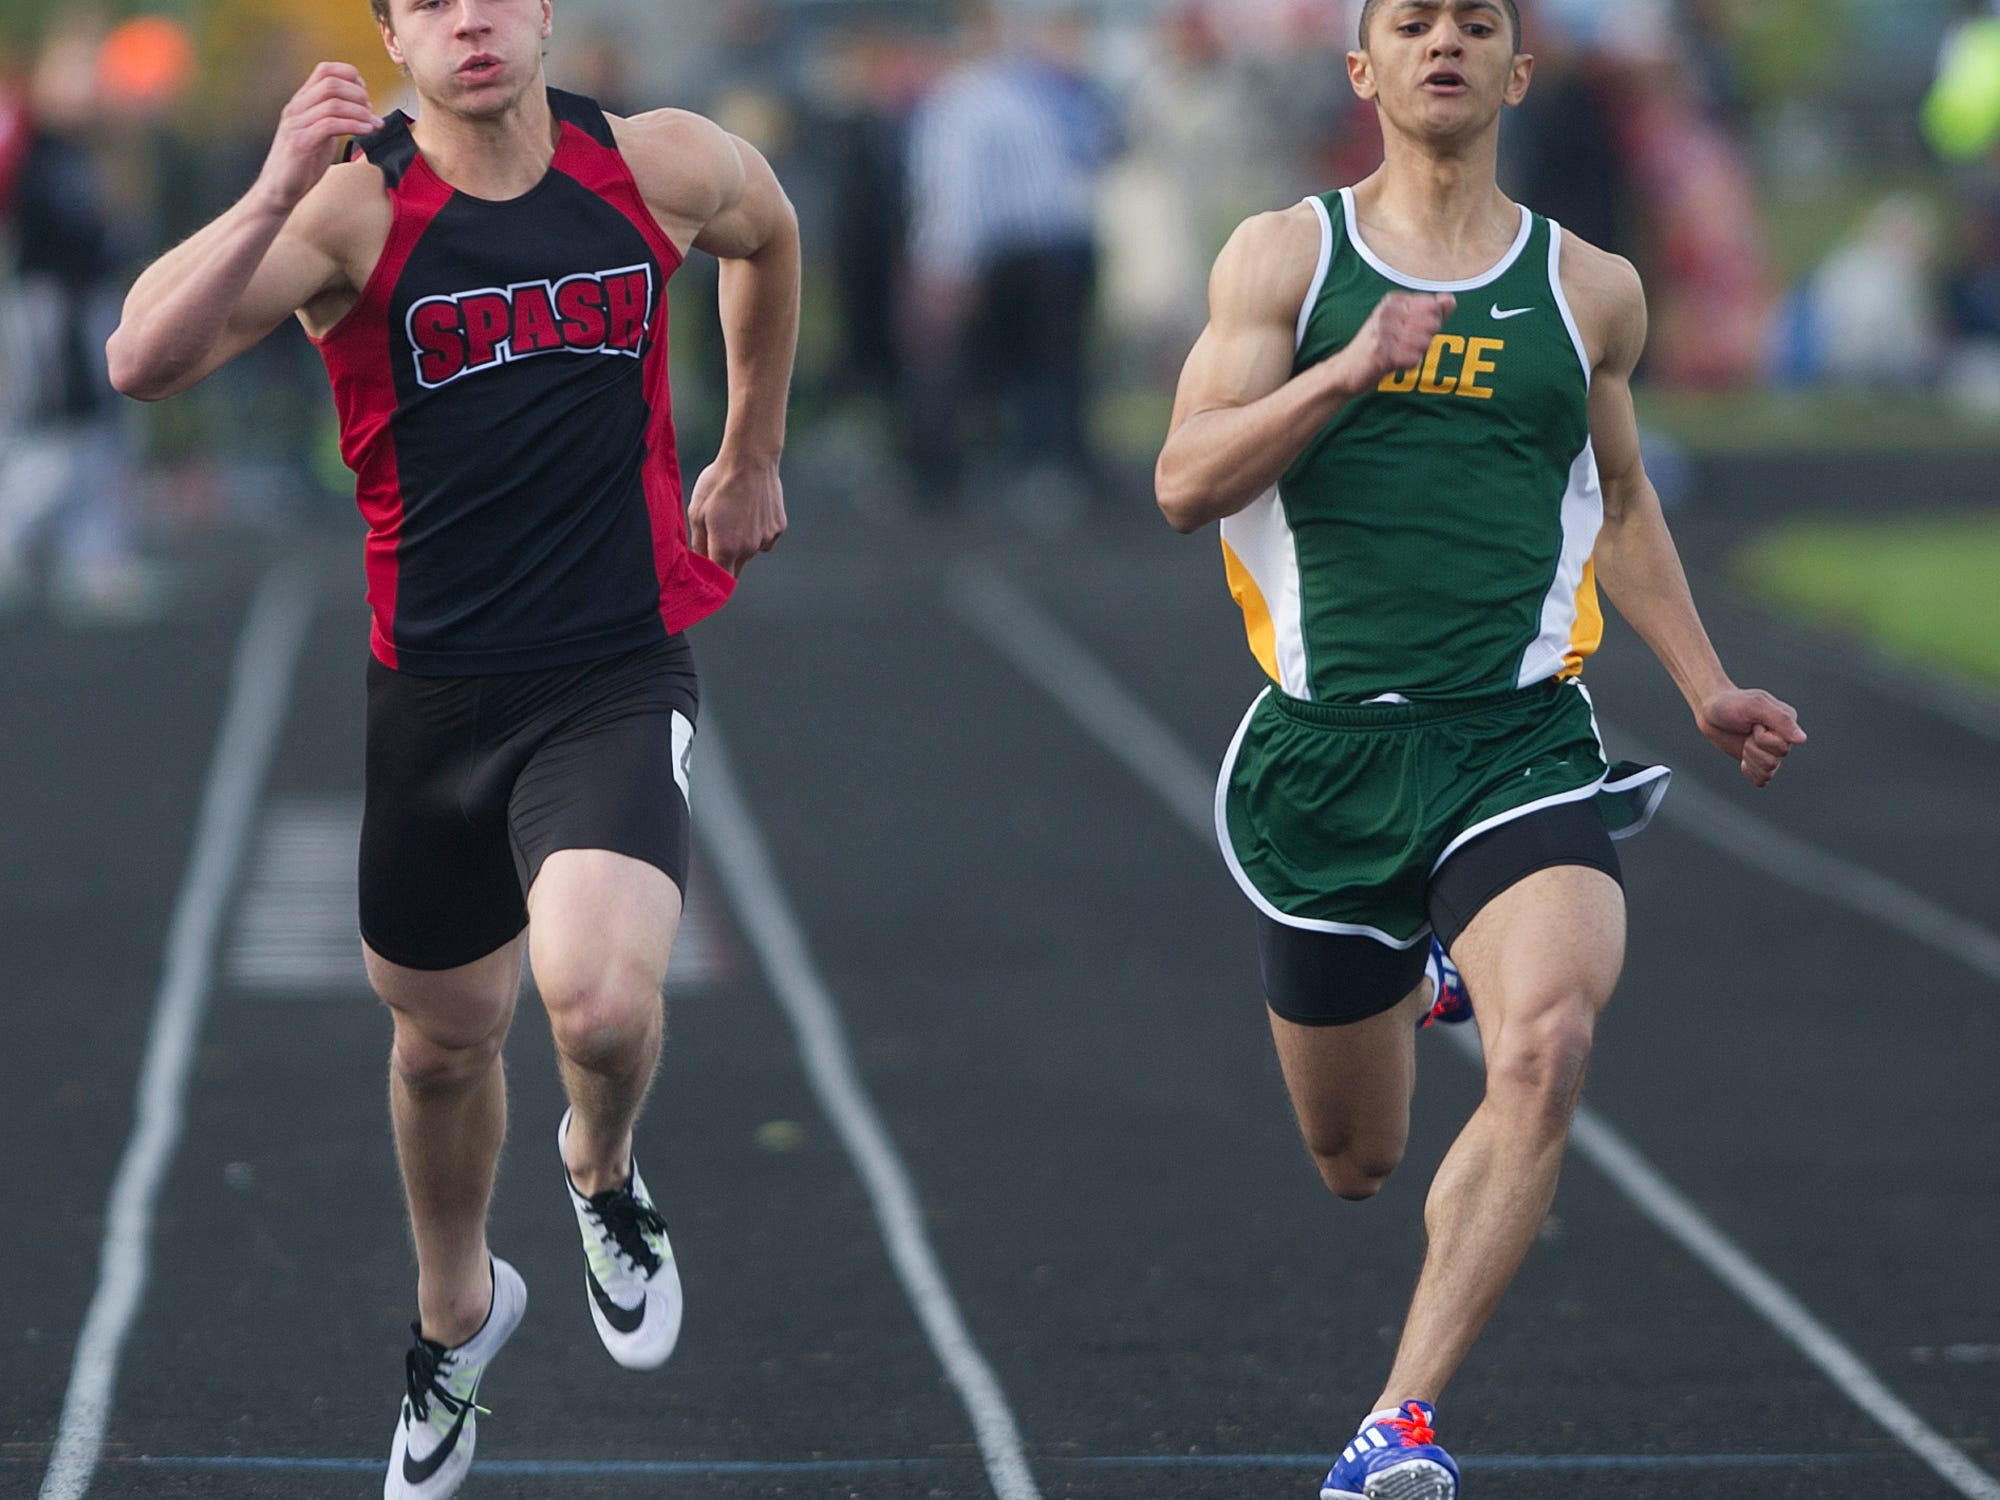 Stevens Point Area Senior High School's Victor Kizewski, left, and D.C. Everest's Deshawn Bryant, right, compete in the 100 meter dash the Wisconsin Valley Conference Track Meet at South Wood County Field in Wisconsin Rapids, Tuesday, May 19, 2015.